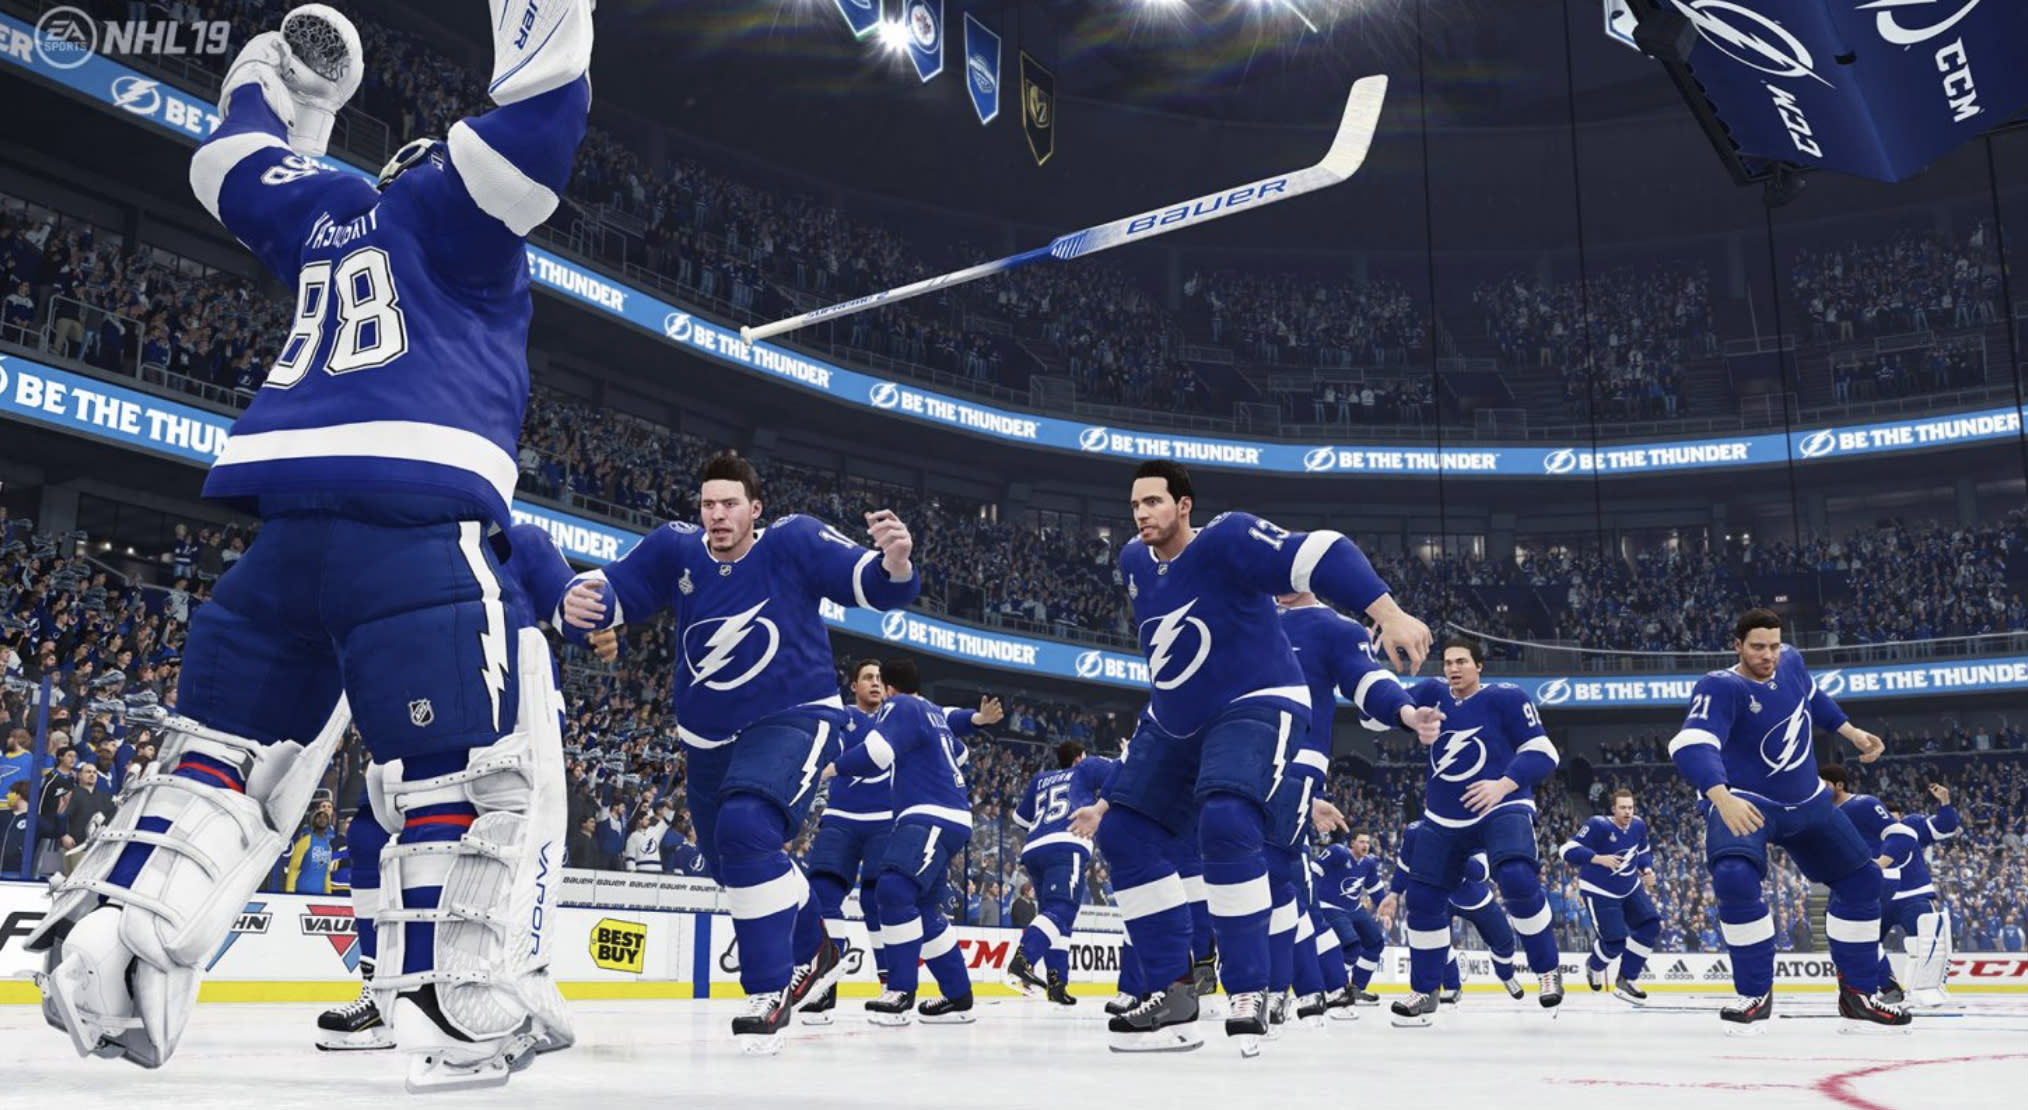 f11868d9 Lightning will win Cup according to EA Sports simulation